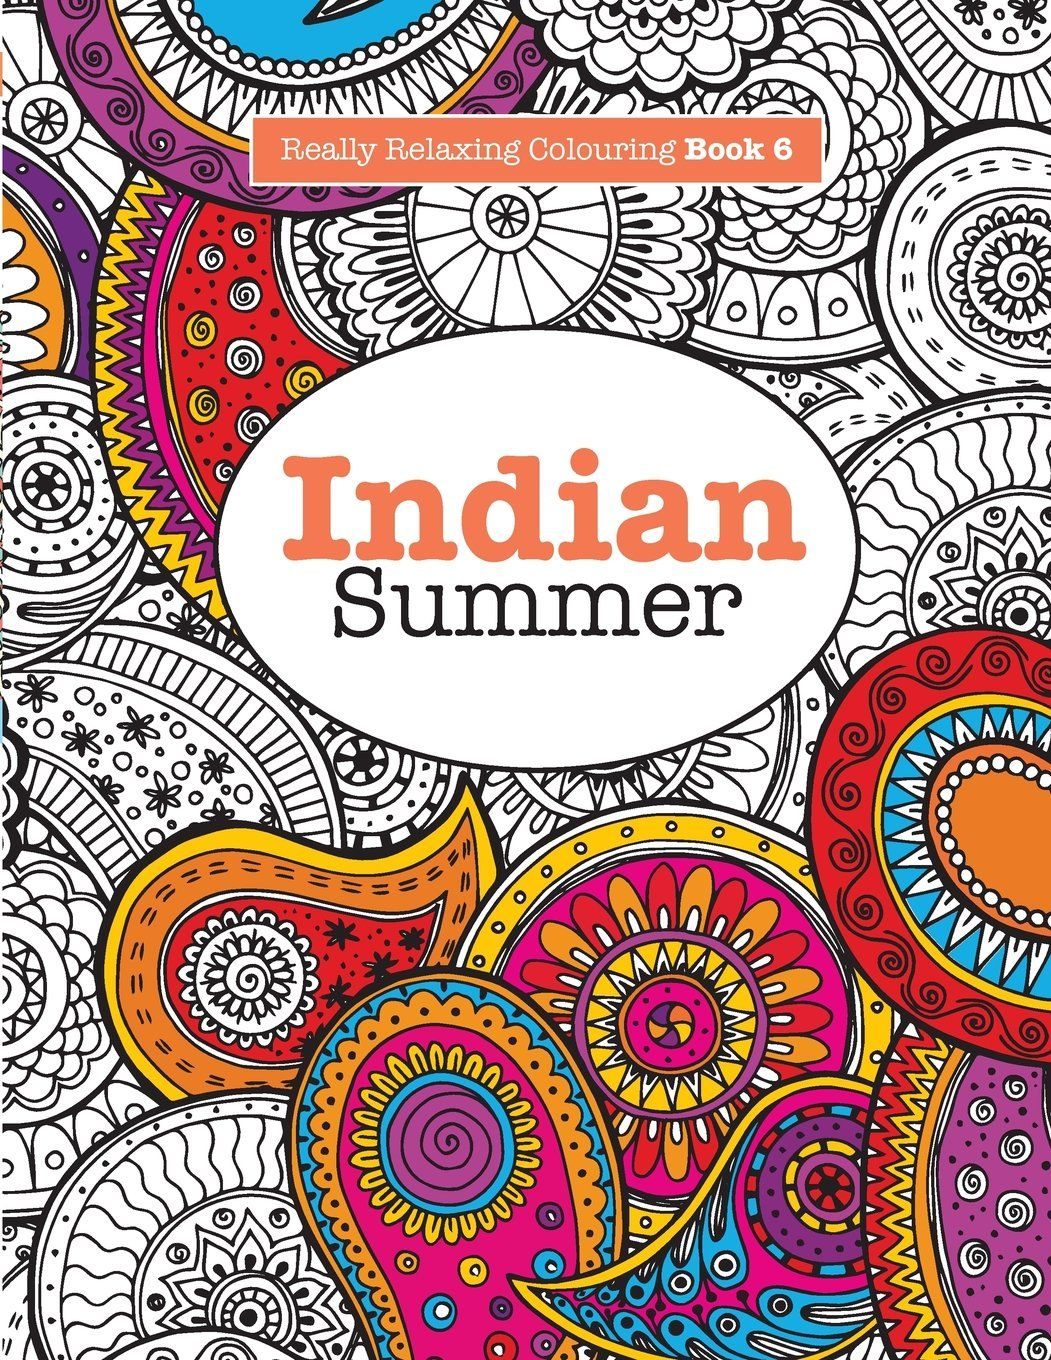 Colour therapy for relaxation - Indian Summer A Jewelled Journey Through Indian Pattern And Colour Really Relaxing Colouring Book Volume 6 Elizabeth James